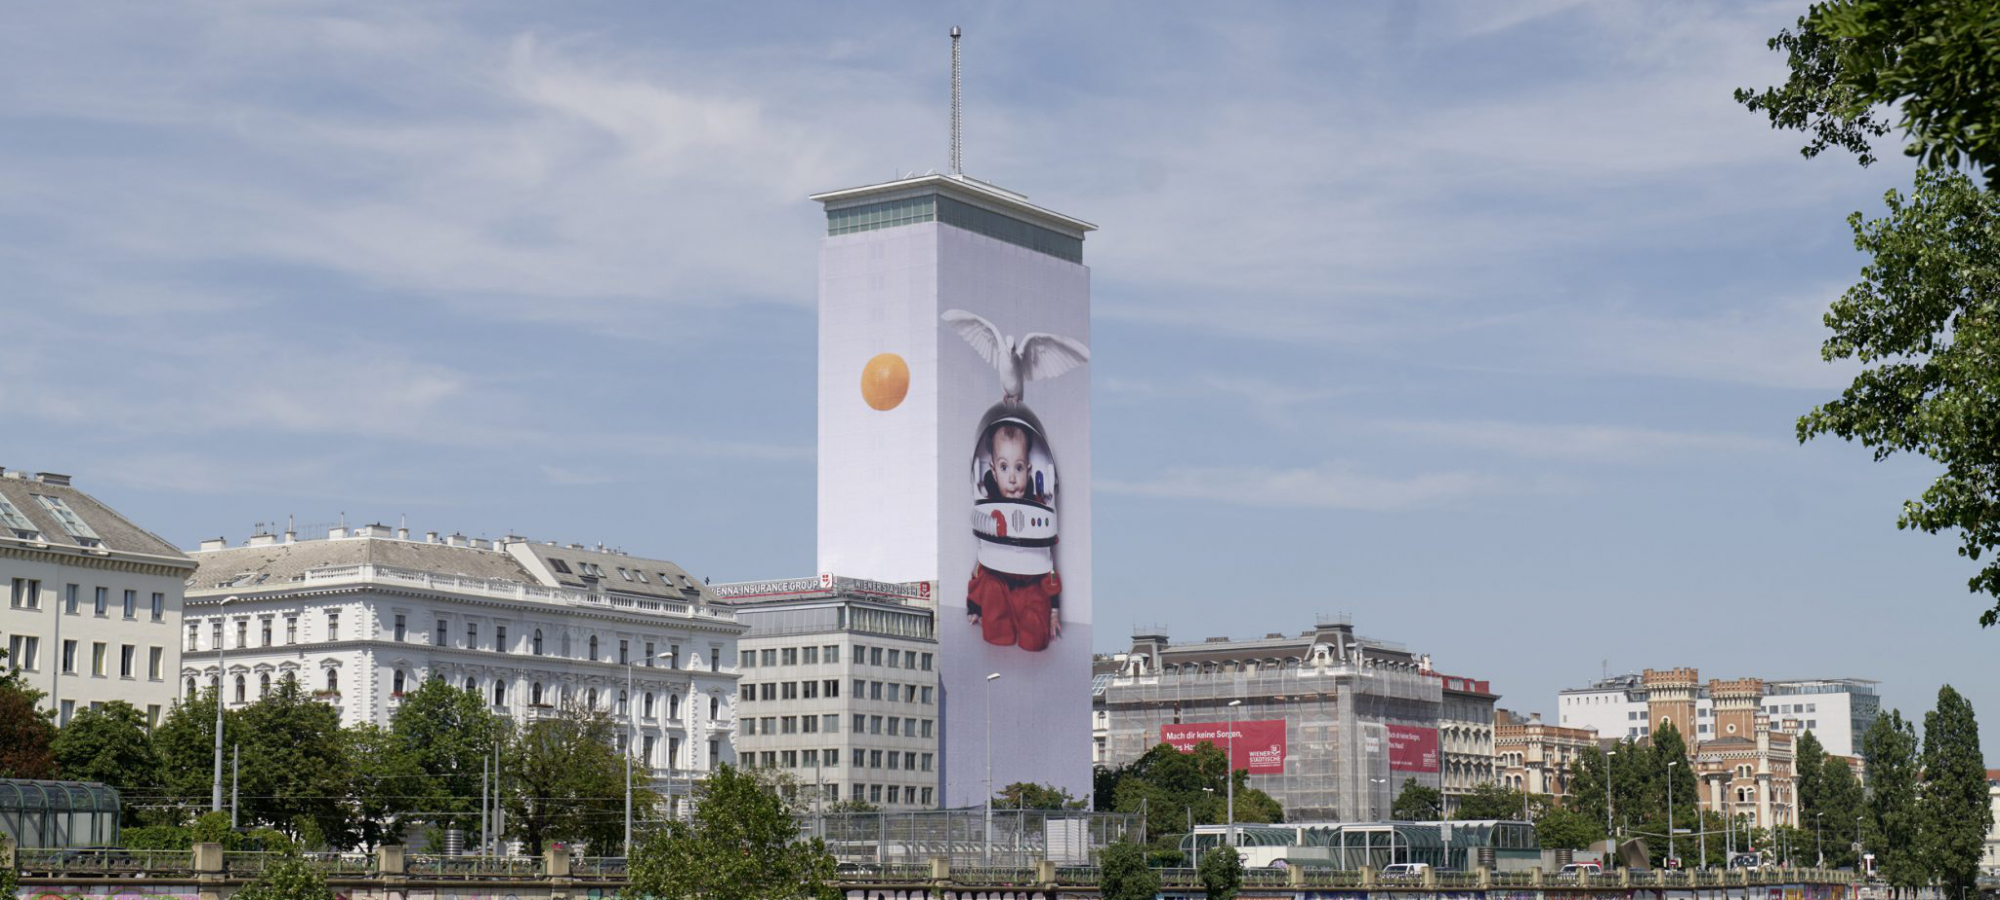 Artistic Wrapping of the Ringturm 2019